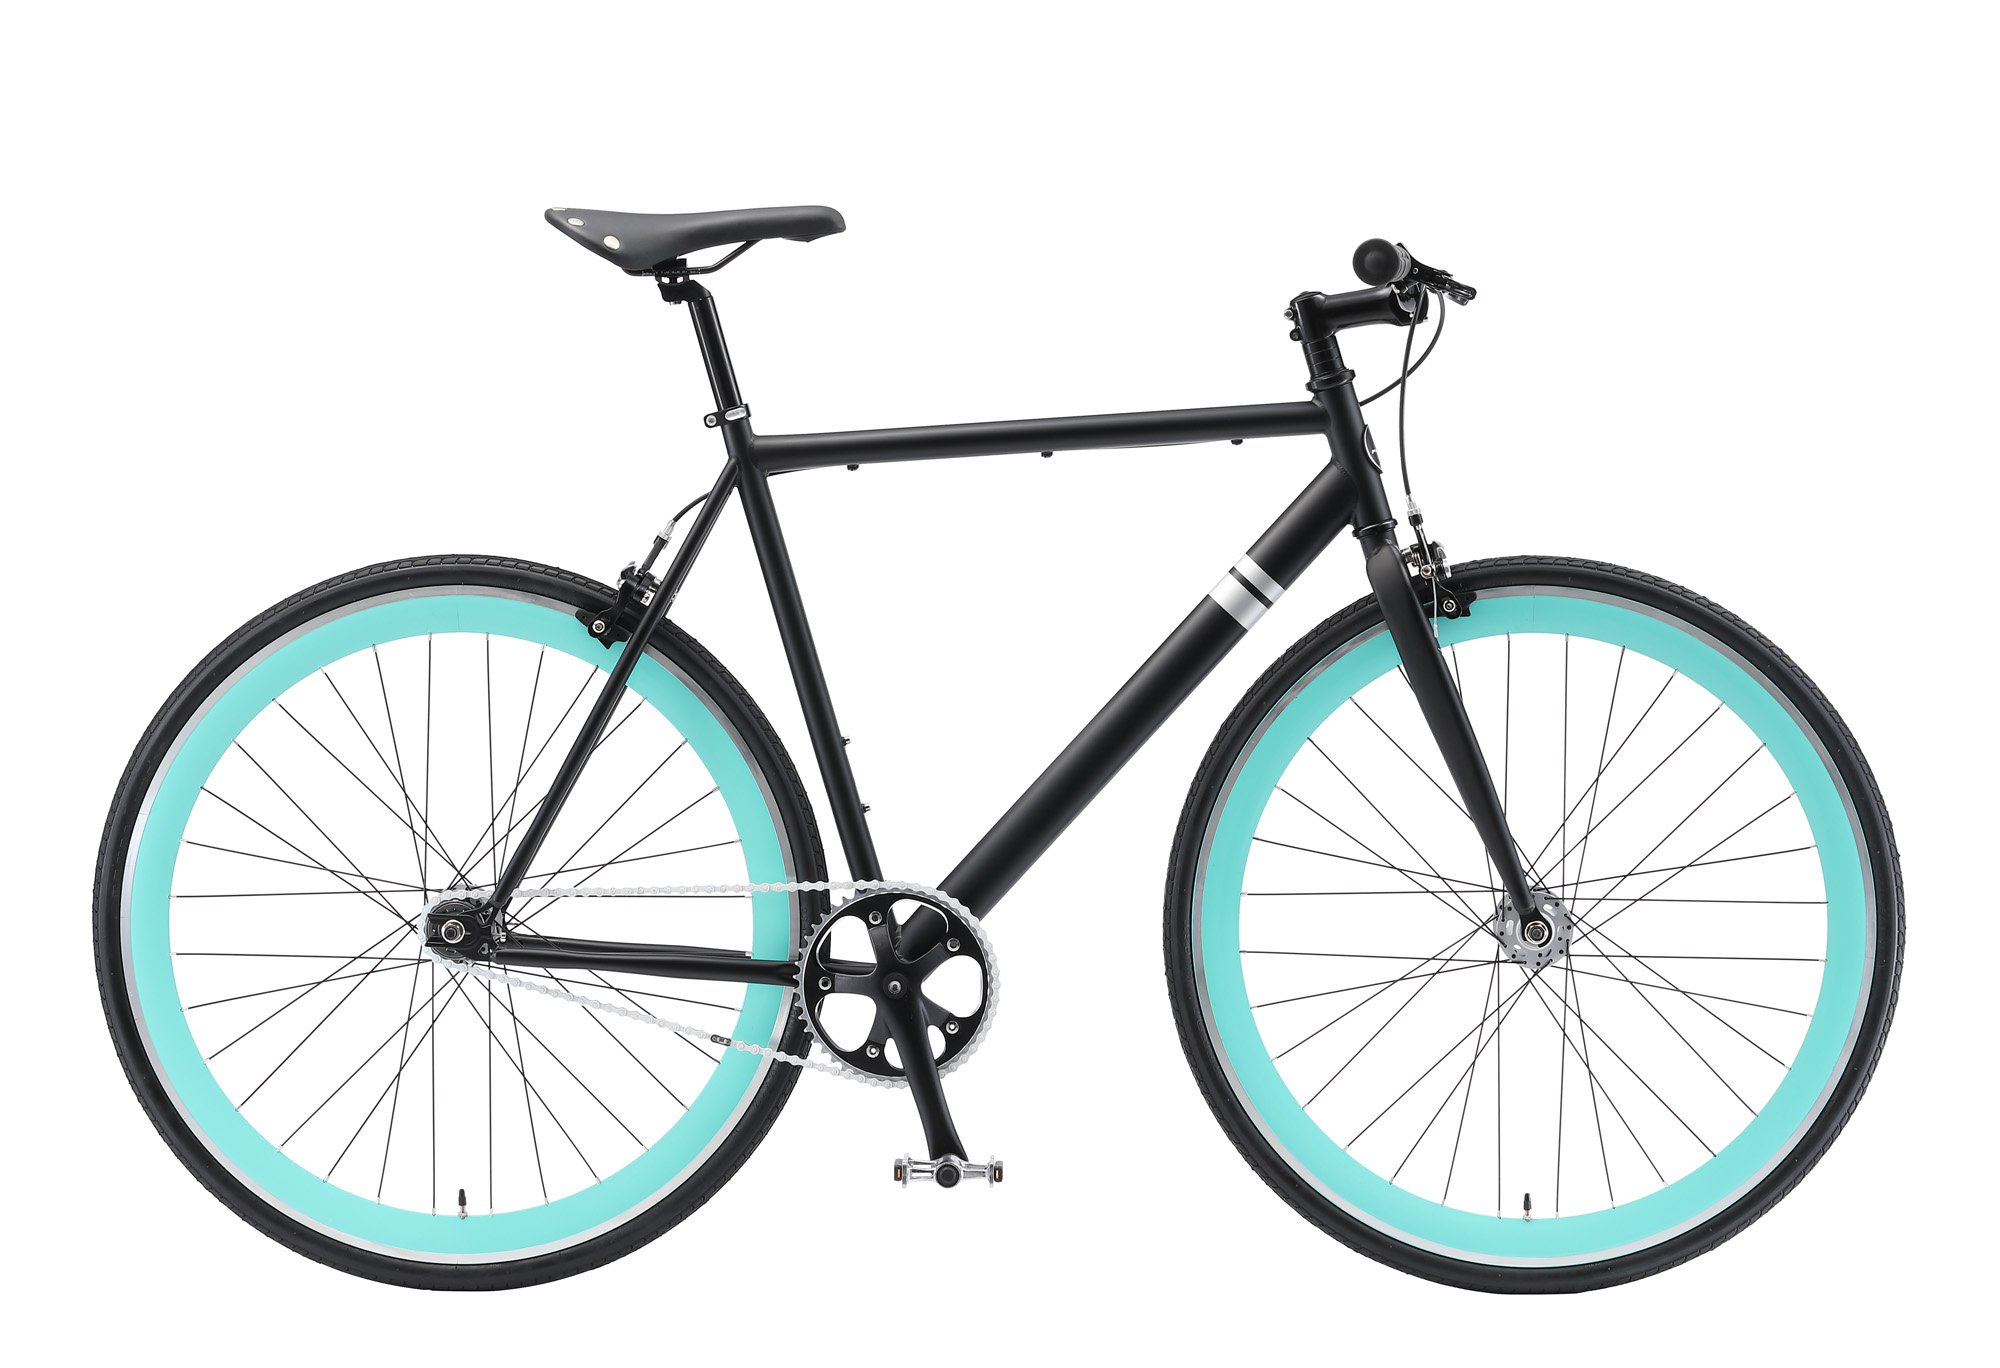 the Foamside II Single Speed / Fixed Gear